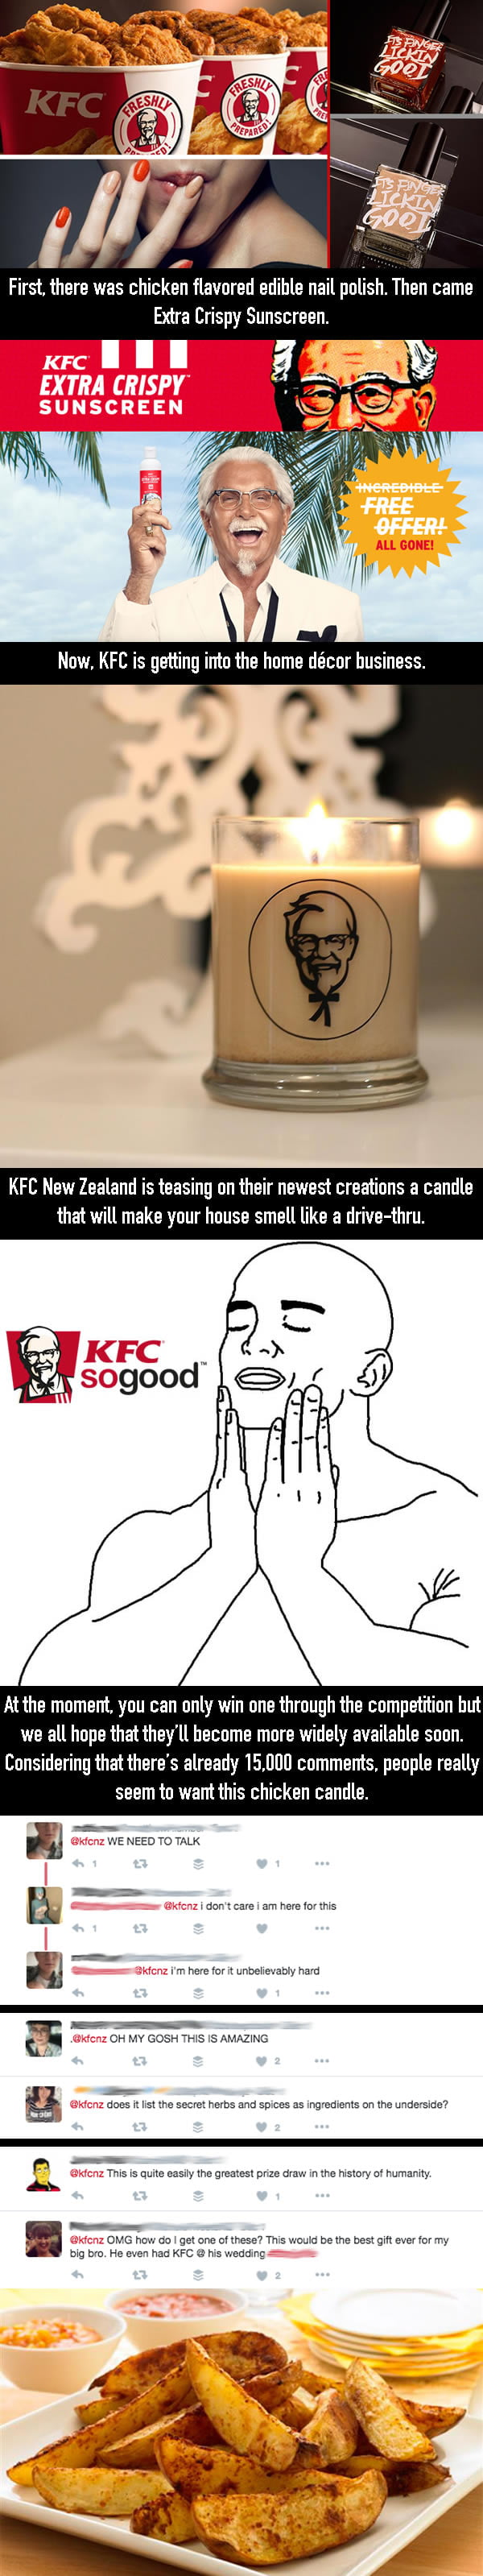 KFC Releases Scented Candle If You Want Your House To Smell Like Fried Chicken